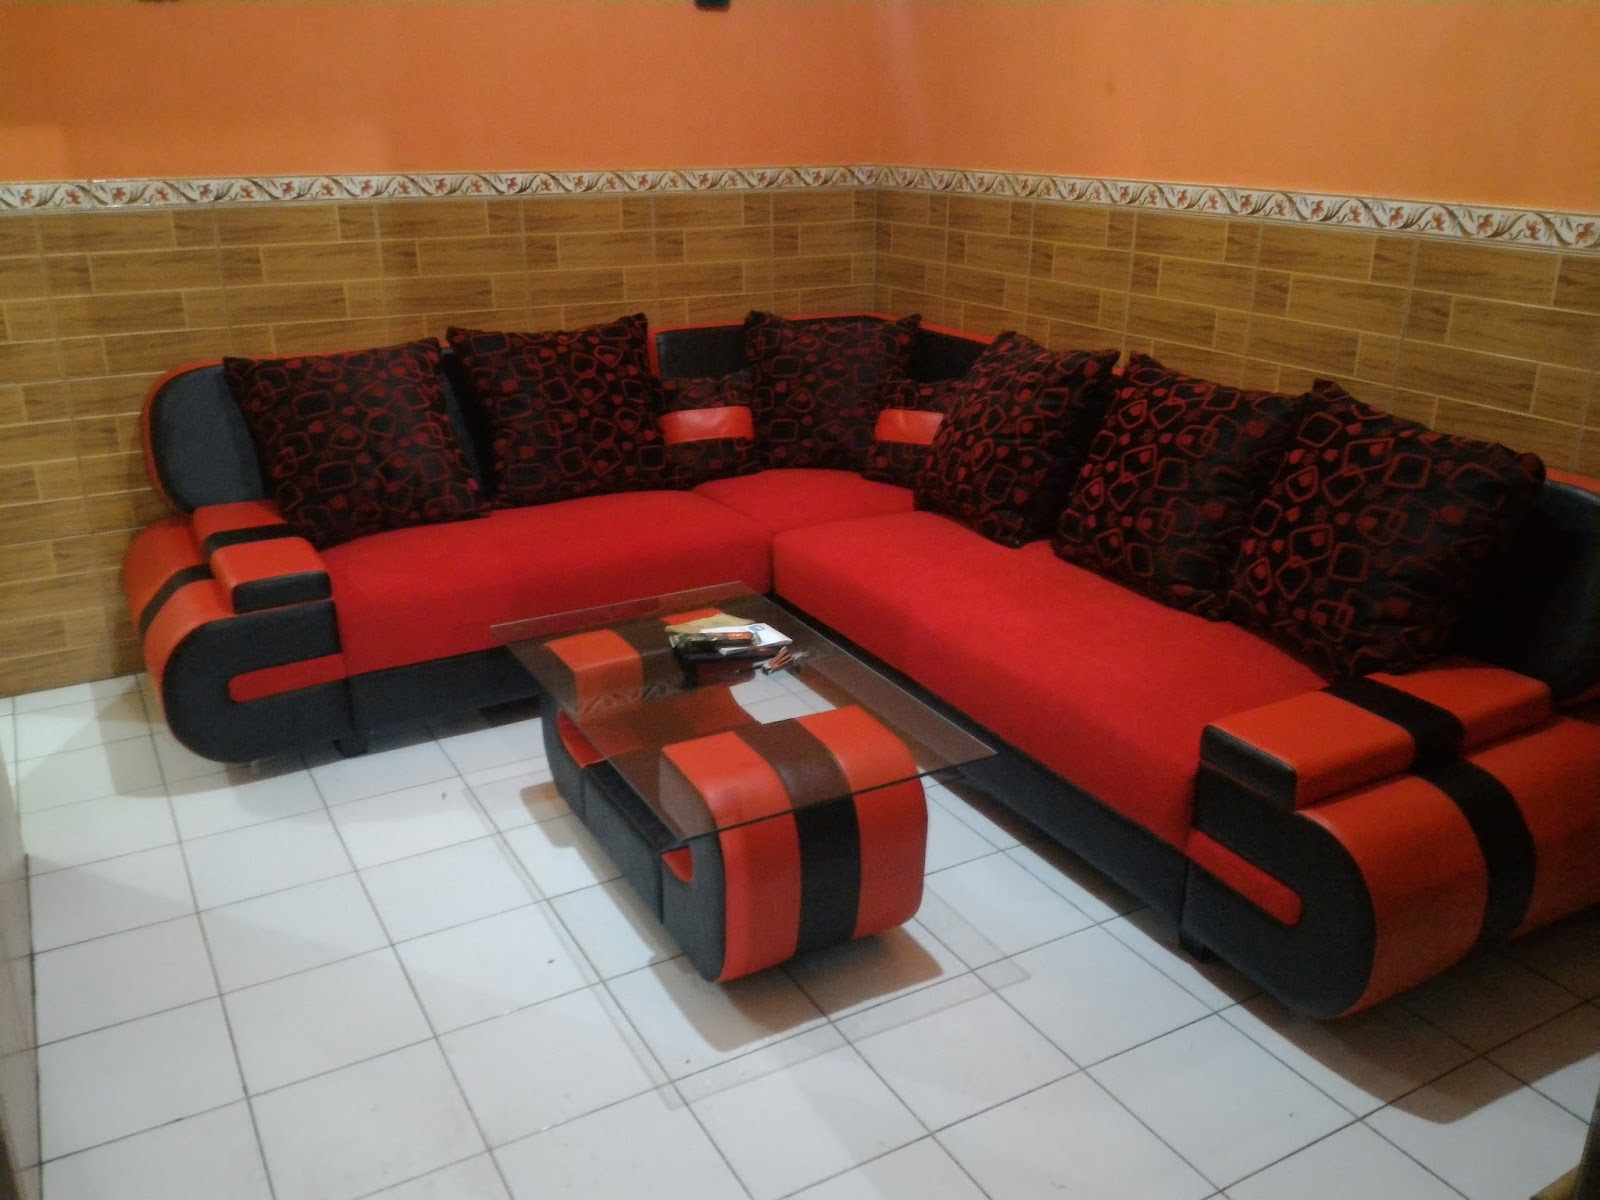 Laris Furniture Sofa L Chiko Panjang